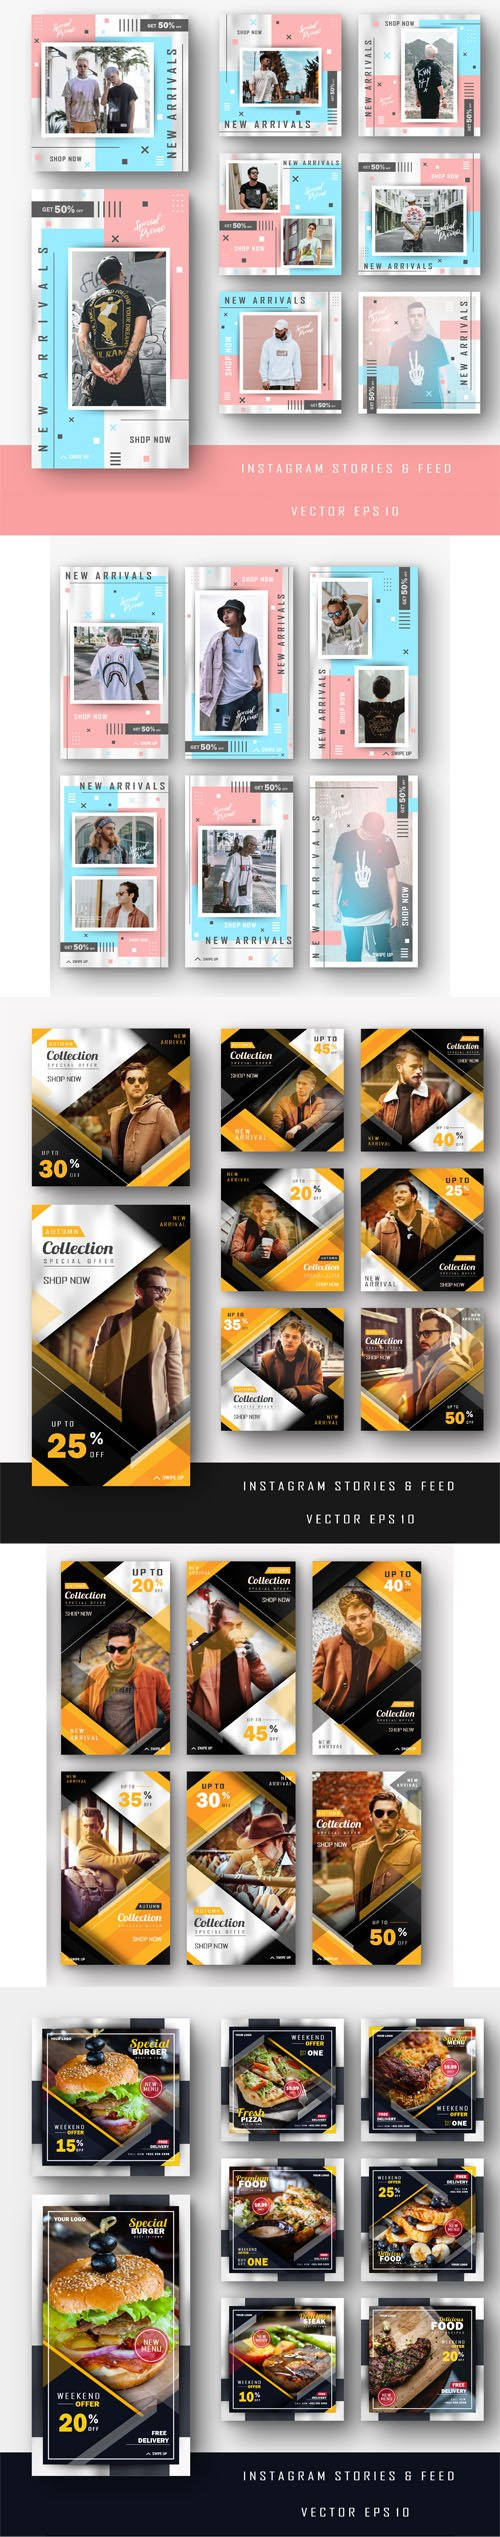 Instagram Stories & Feed Vector EPS Templates + Business Stationery